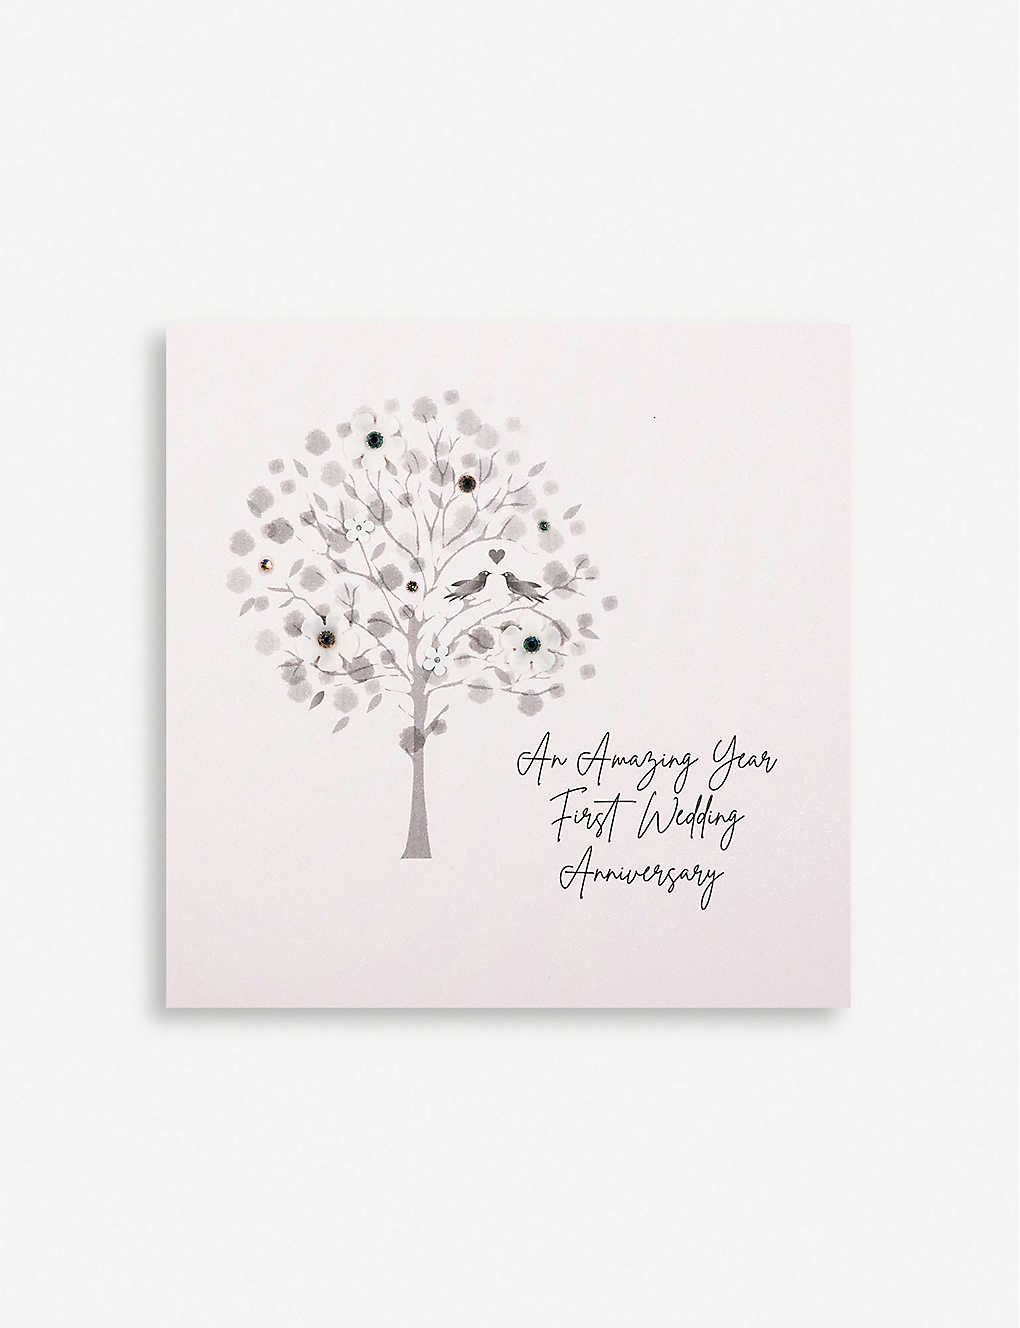 FIVE DOLLAR SHAKE: 1st Wedding Anniversary greetings card